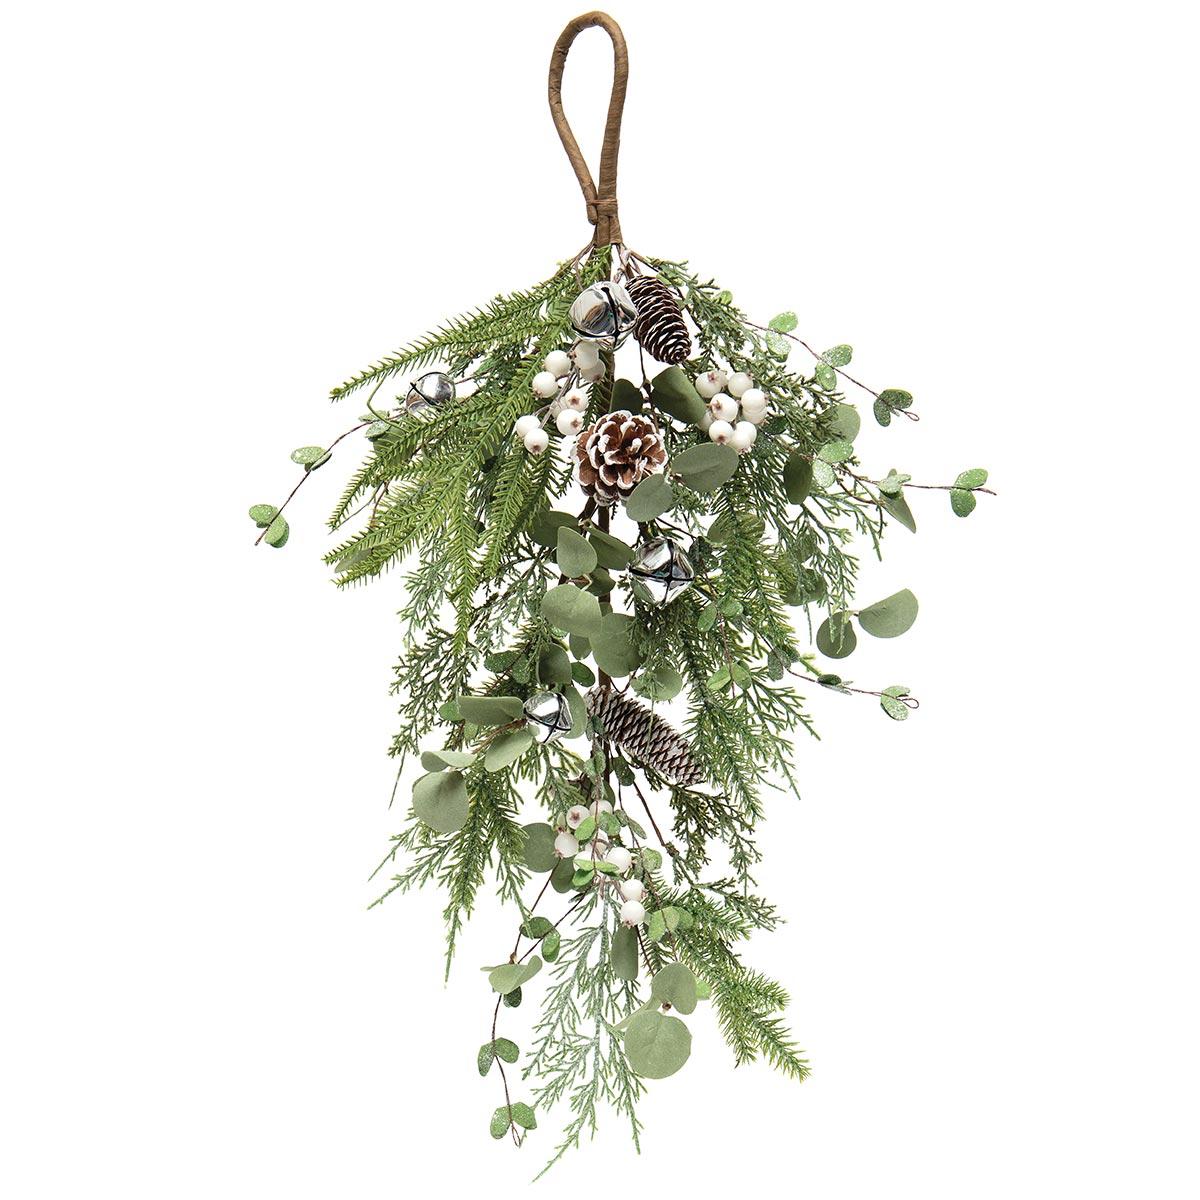 SLEIGH BELL BOUGH WITH EUCALYPTUS, PINE, JINGLE BELLS